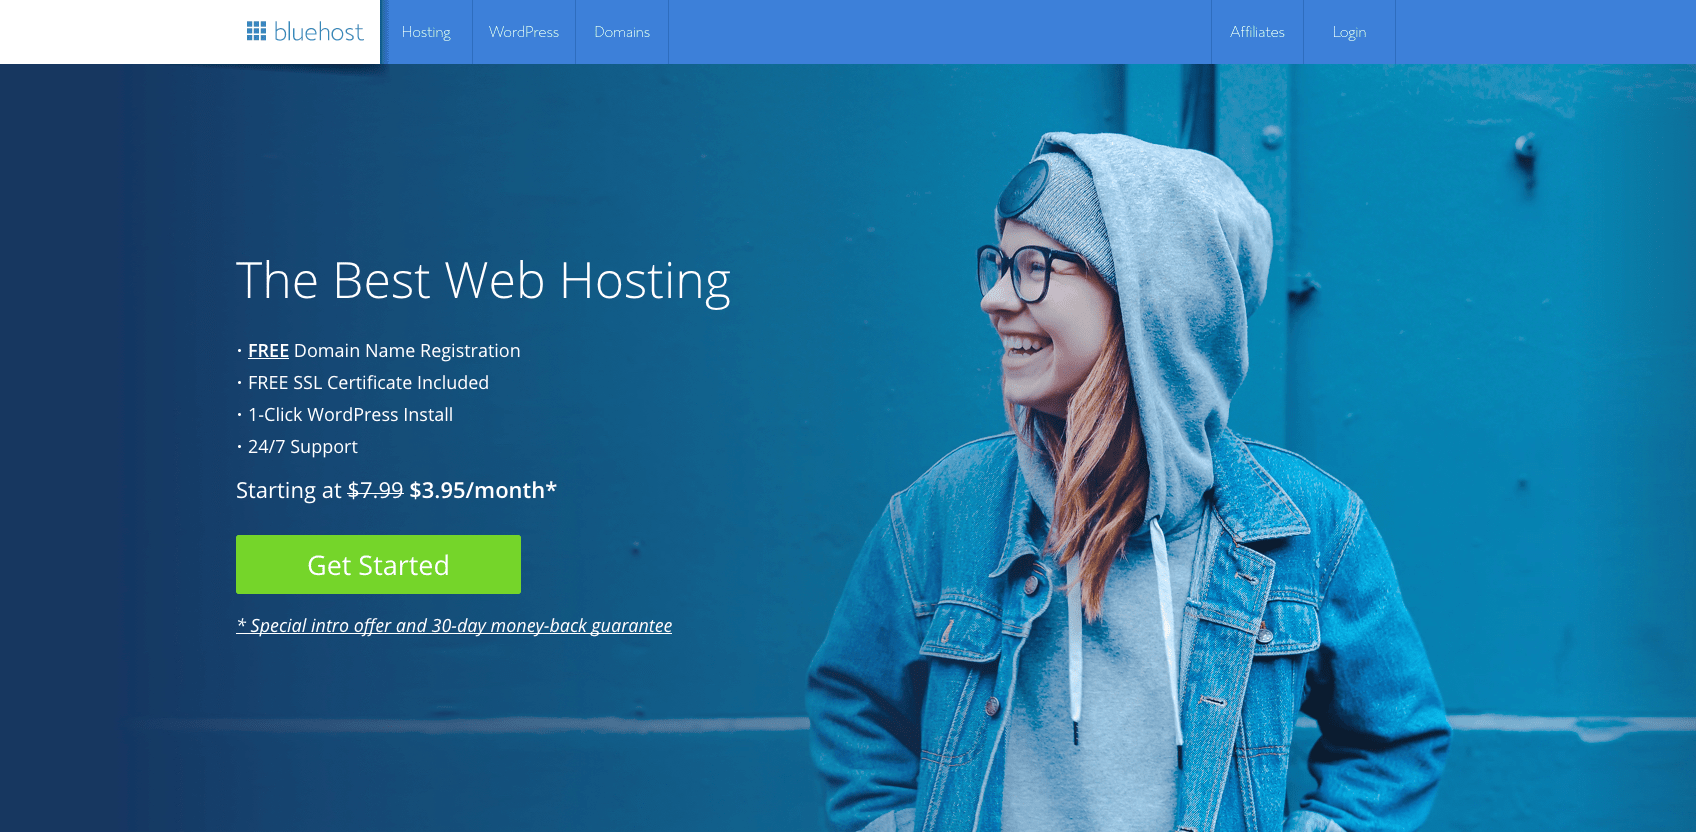 1-Bluehost HomePage